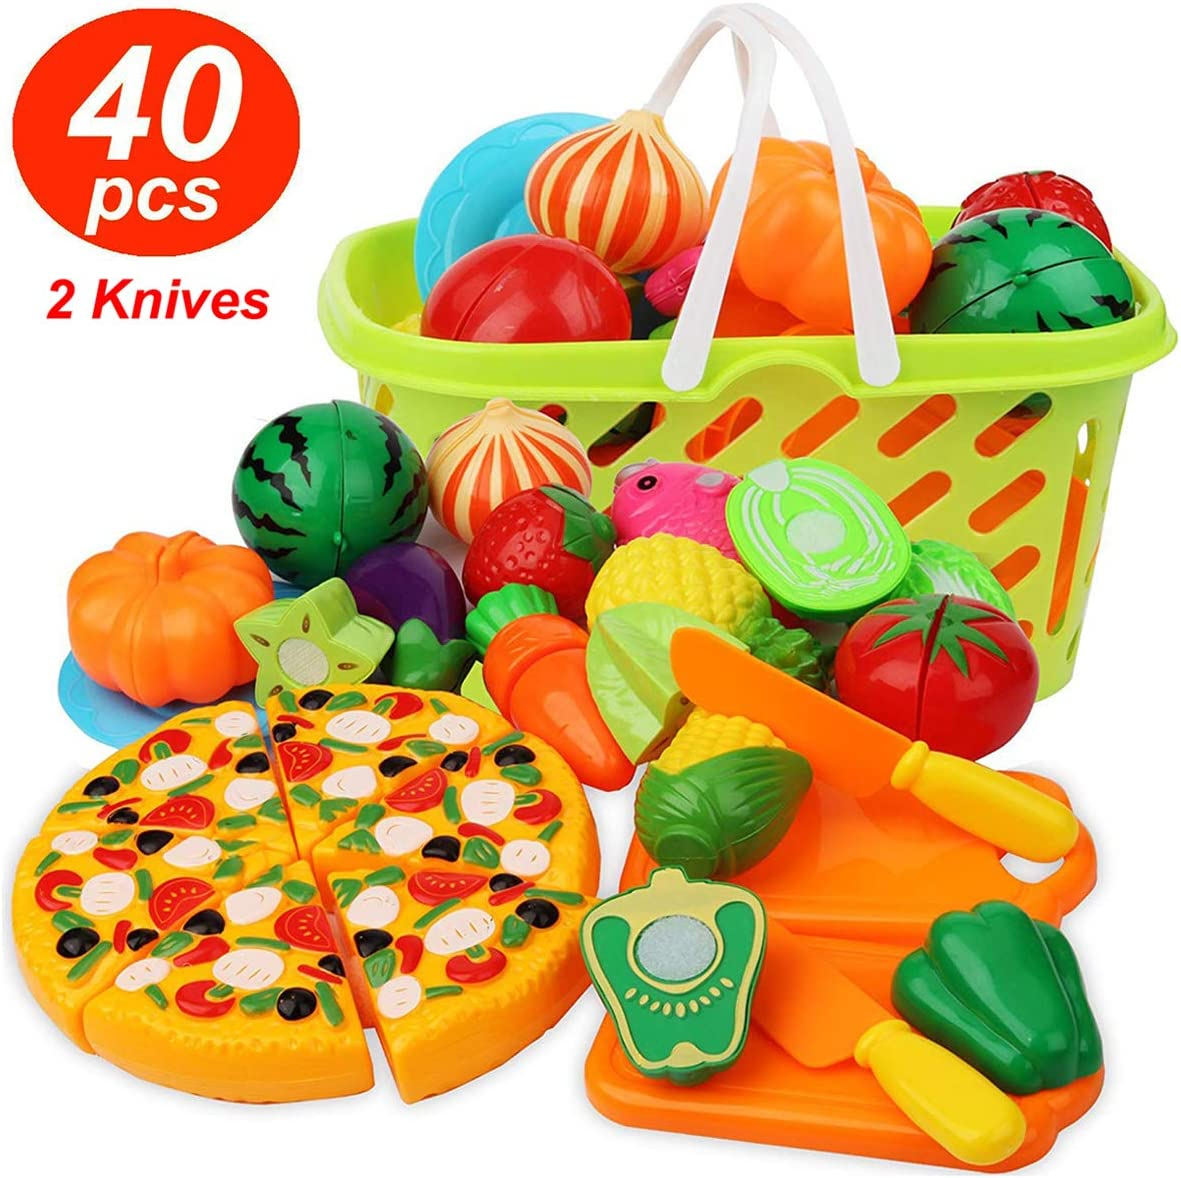 Play miniature education food Cutting Fruit Vegetable Food Wooden Kitchen toys